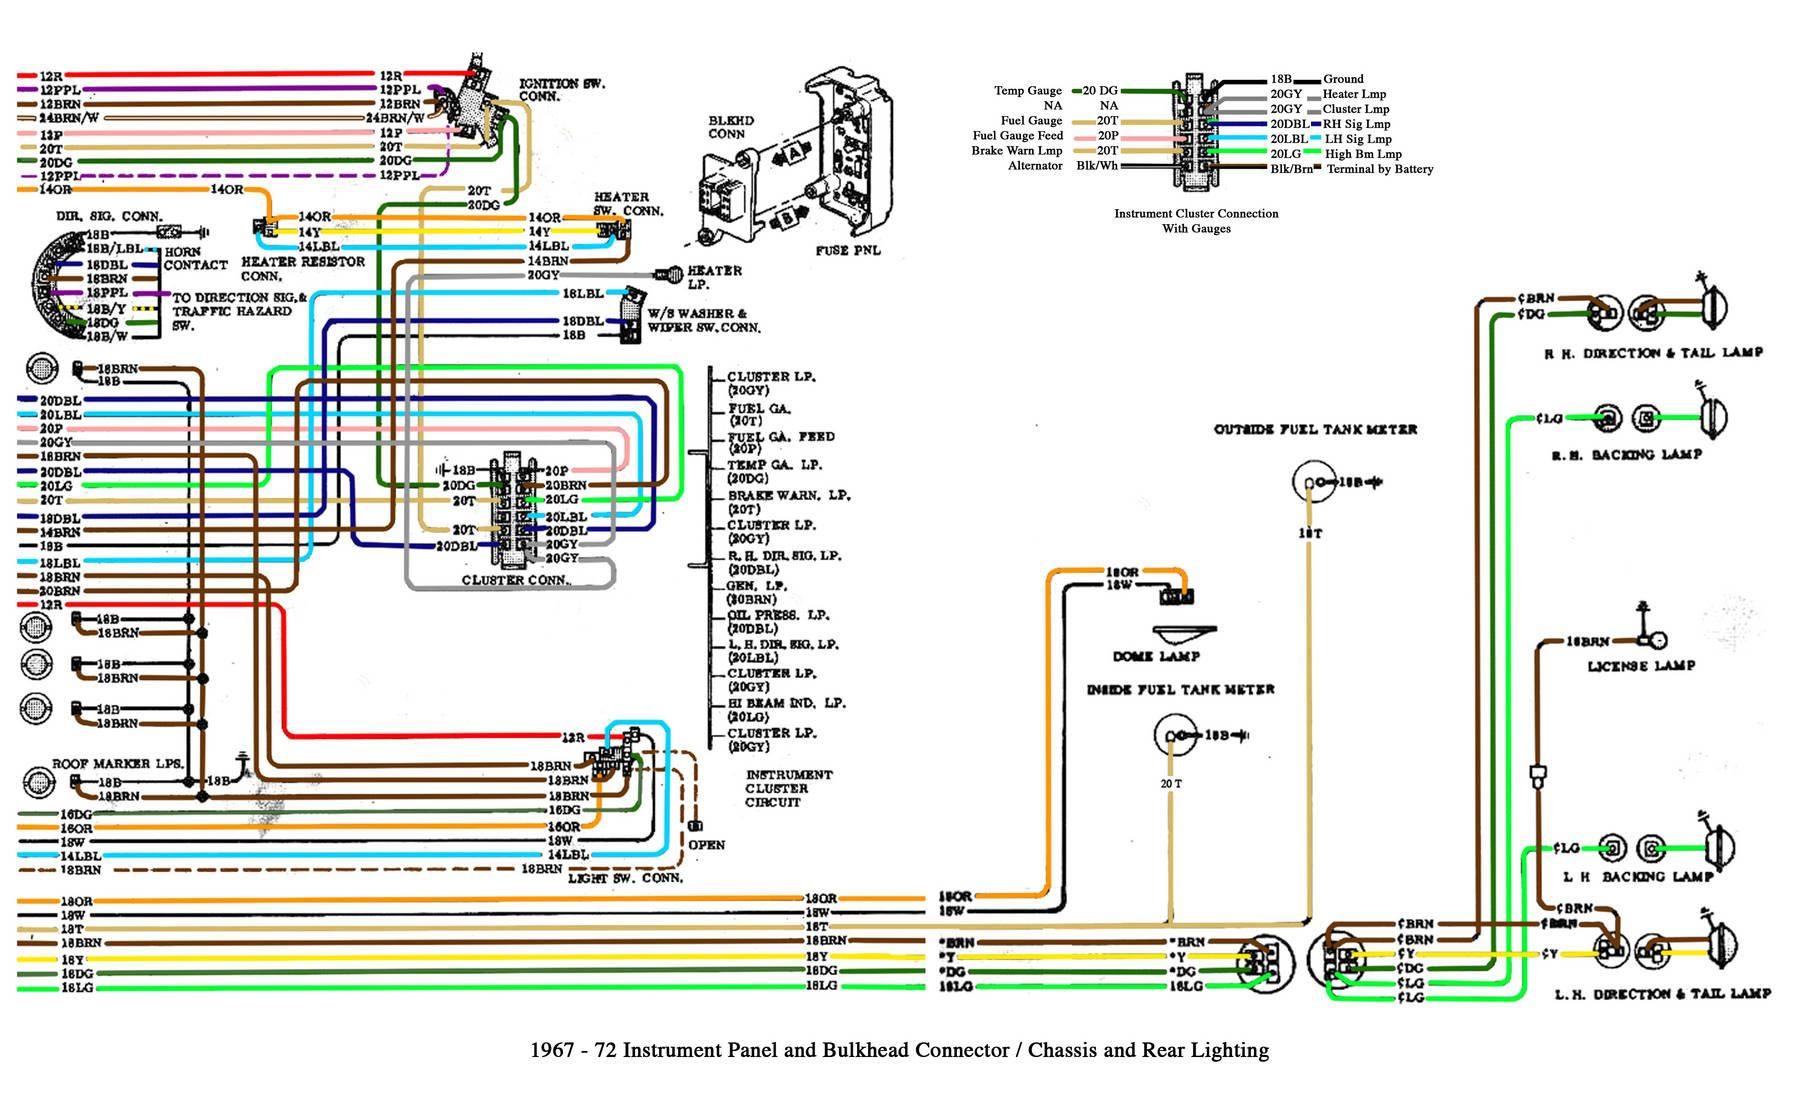 wiring diagram 72 chevy truck, Trailer wiring diagram